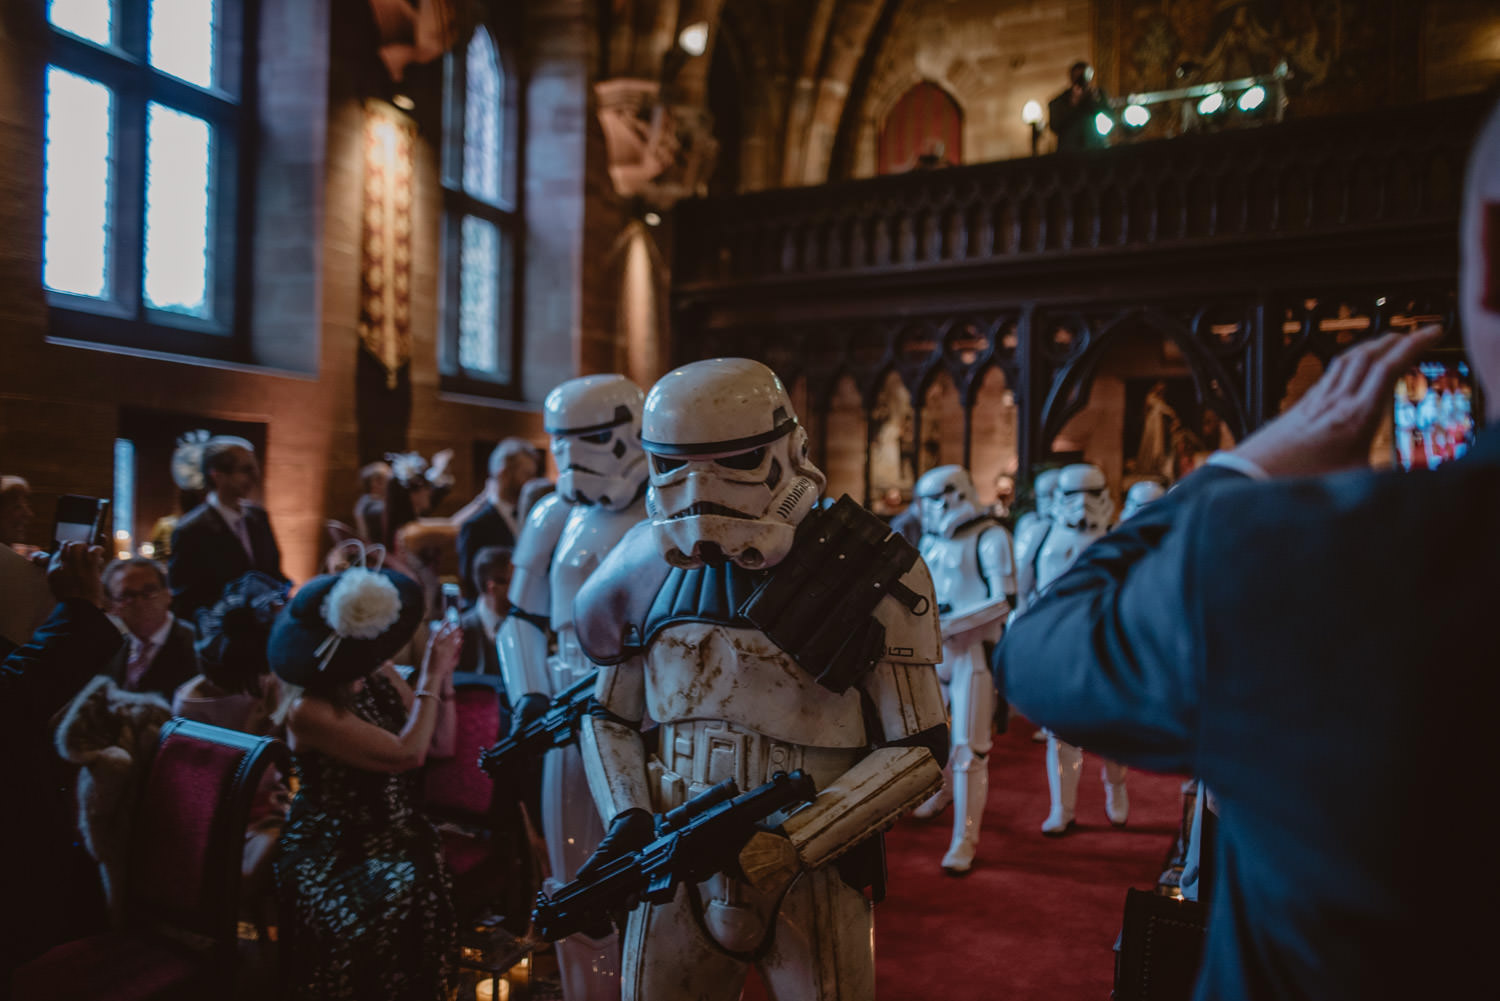 Storm Troppers entering at the wedding ceremony in Peckforton Castle